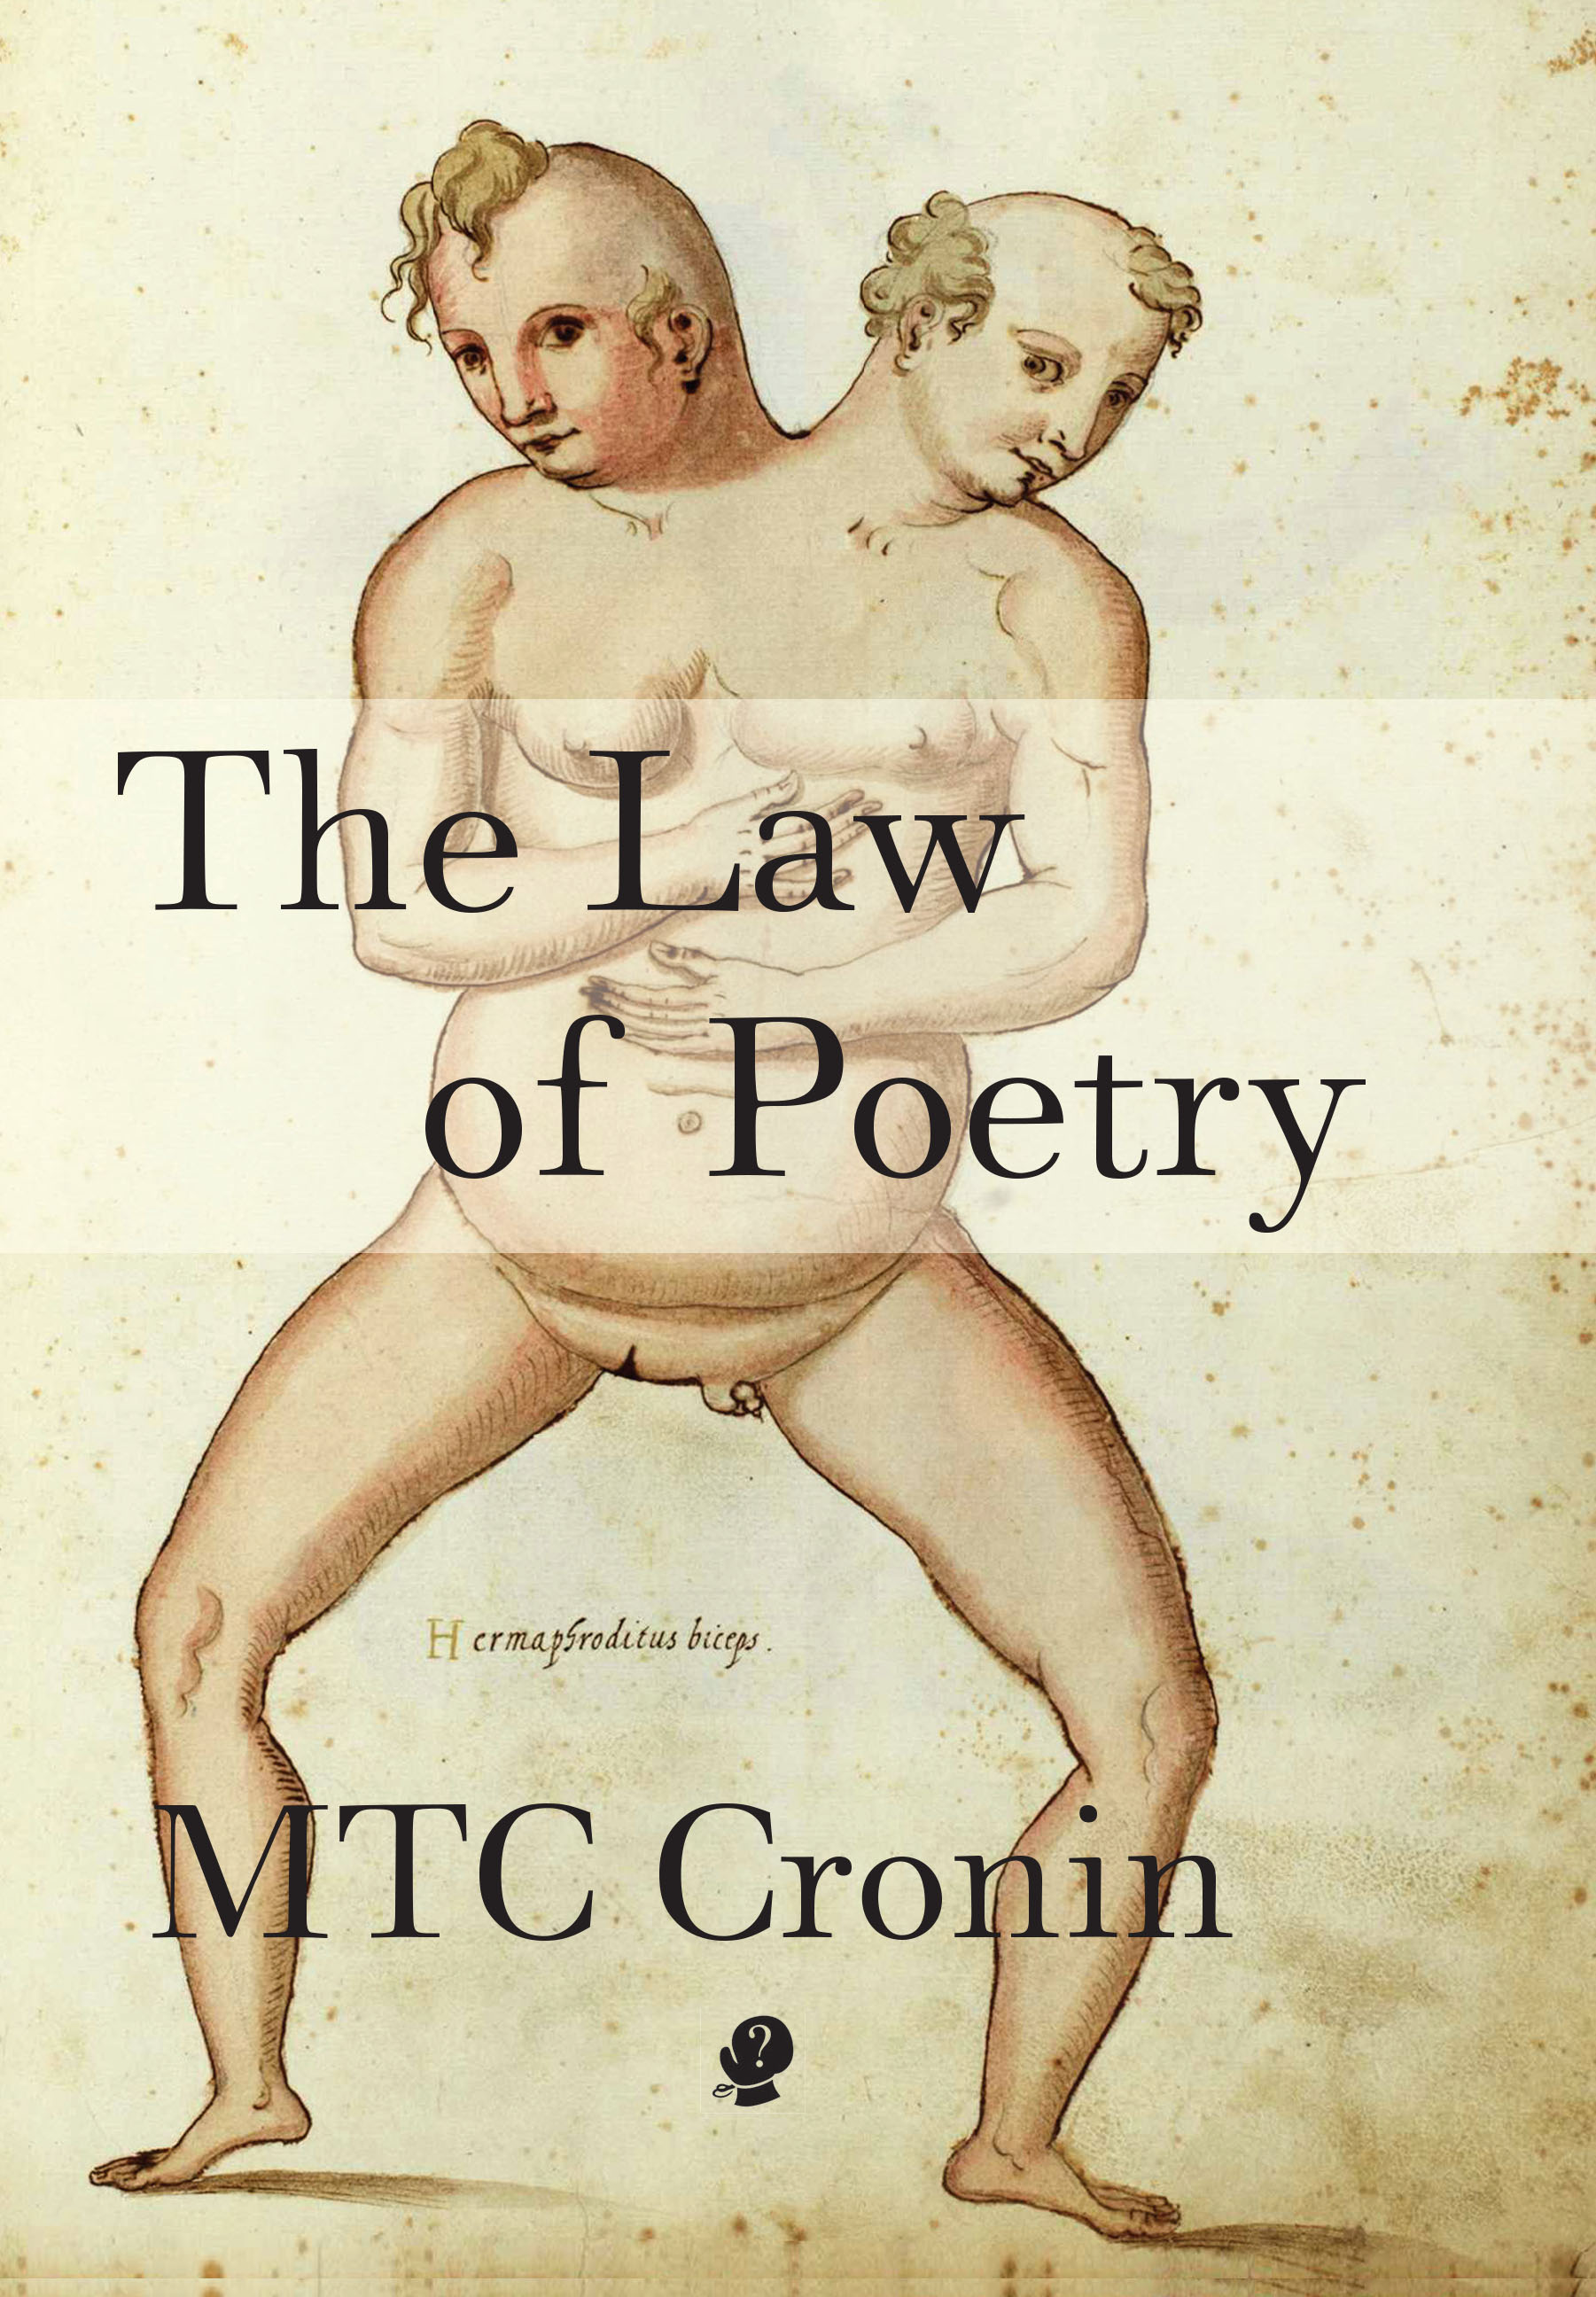 MTC Cronin The Law of Poetry - colour